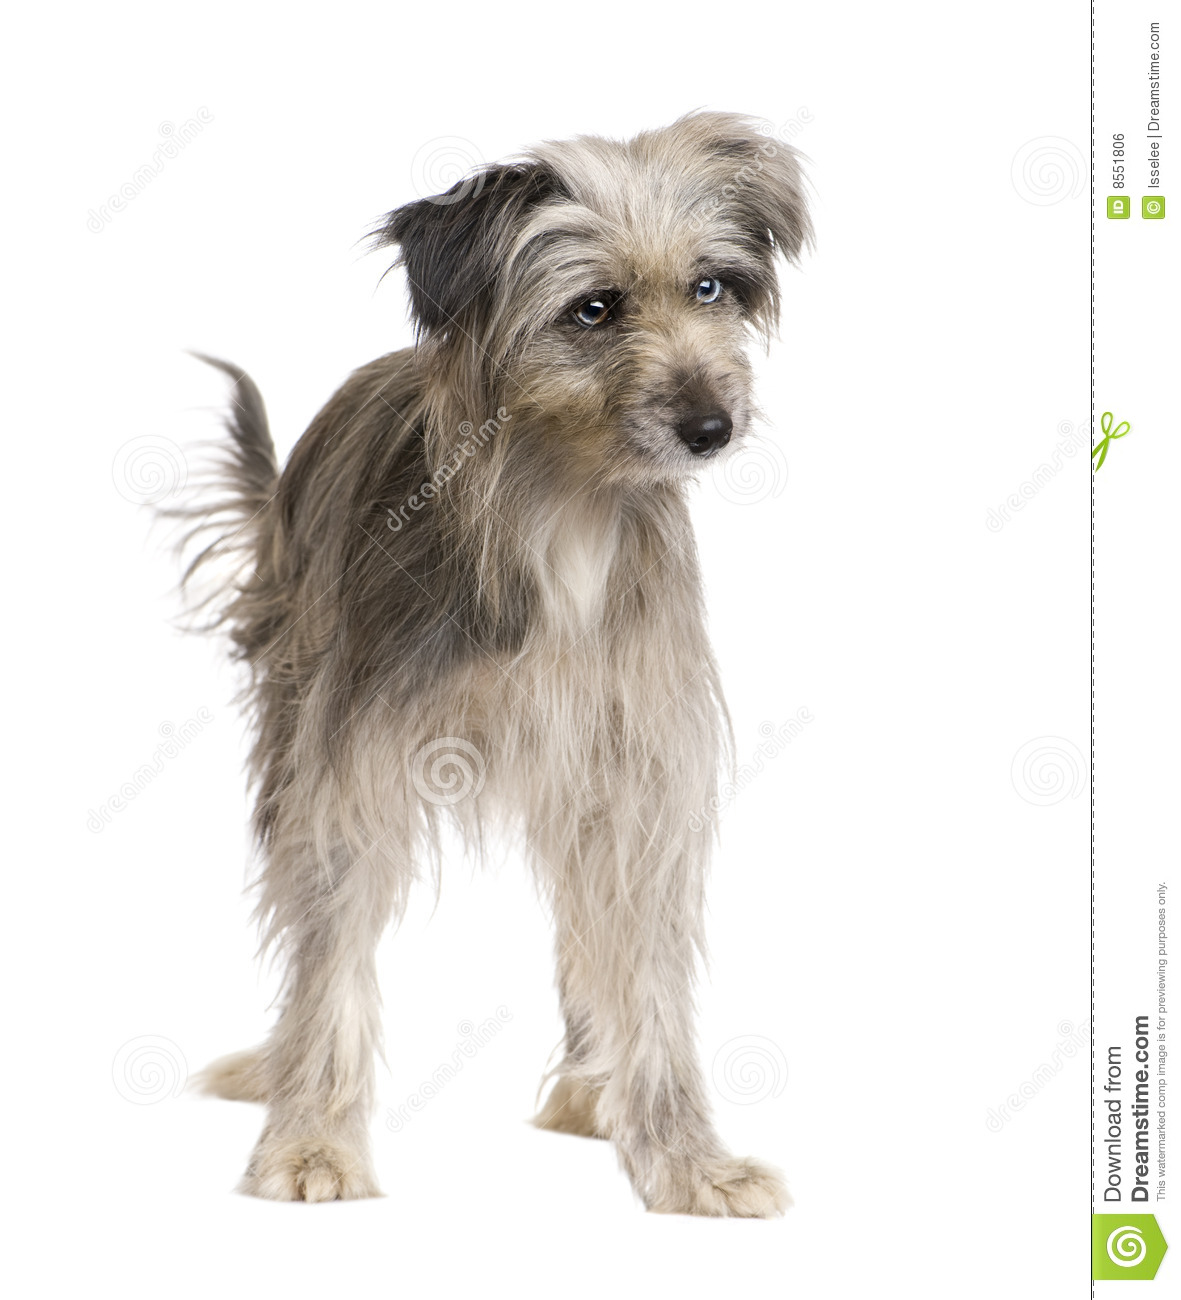 of pyrenean shepherd 1 year more similar stock images of pyrenean ...